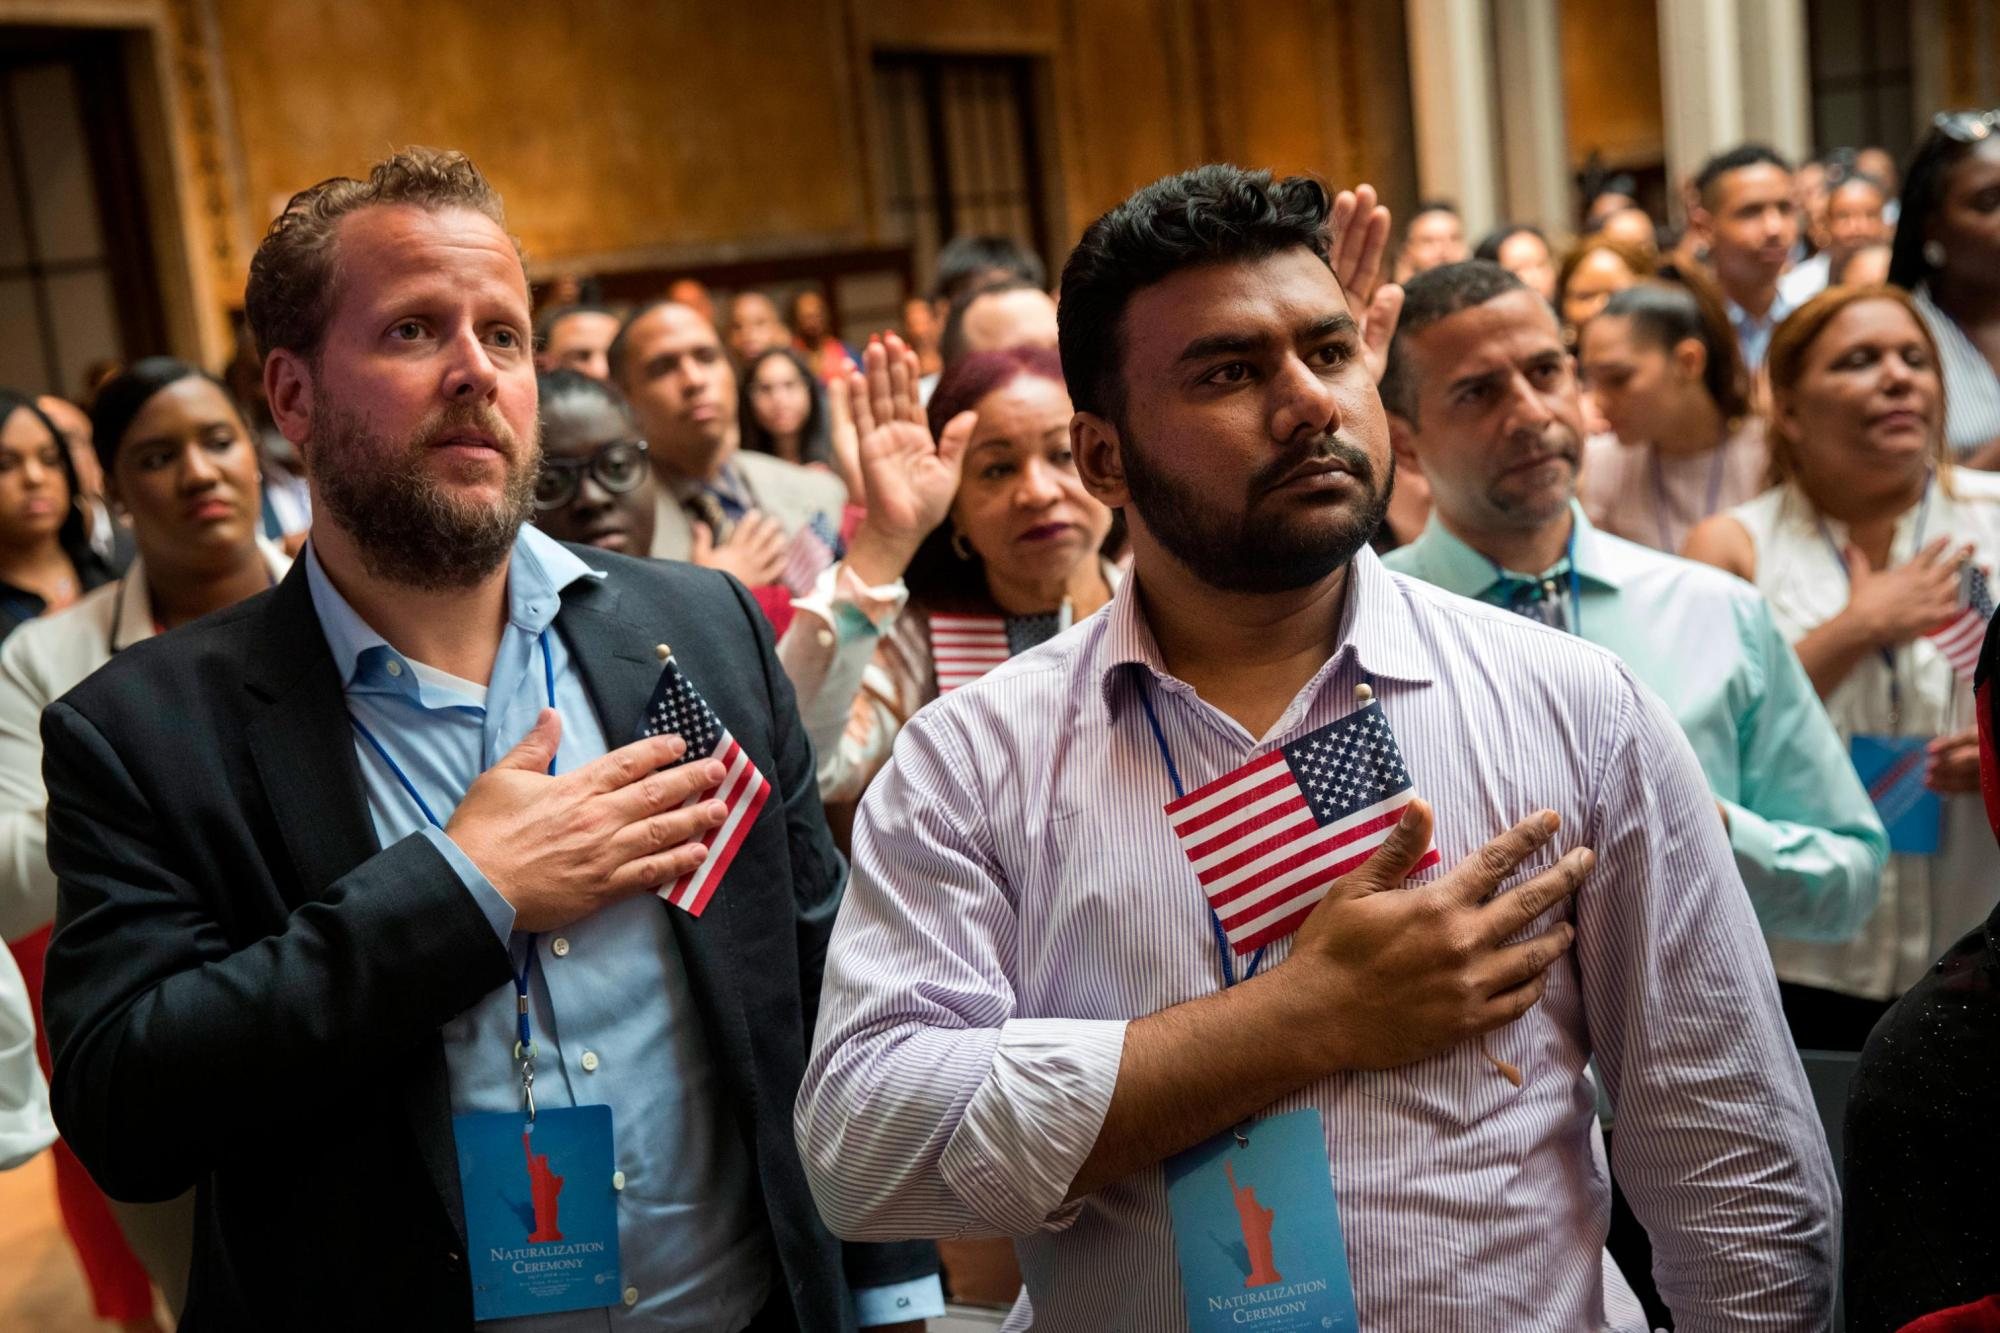 New U.S. citizens recite the Pledge of Allegiance during a naturalization ceremony in New York in 2018. (Drew Angerer/Getty Images)